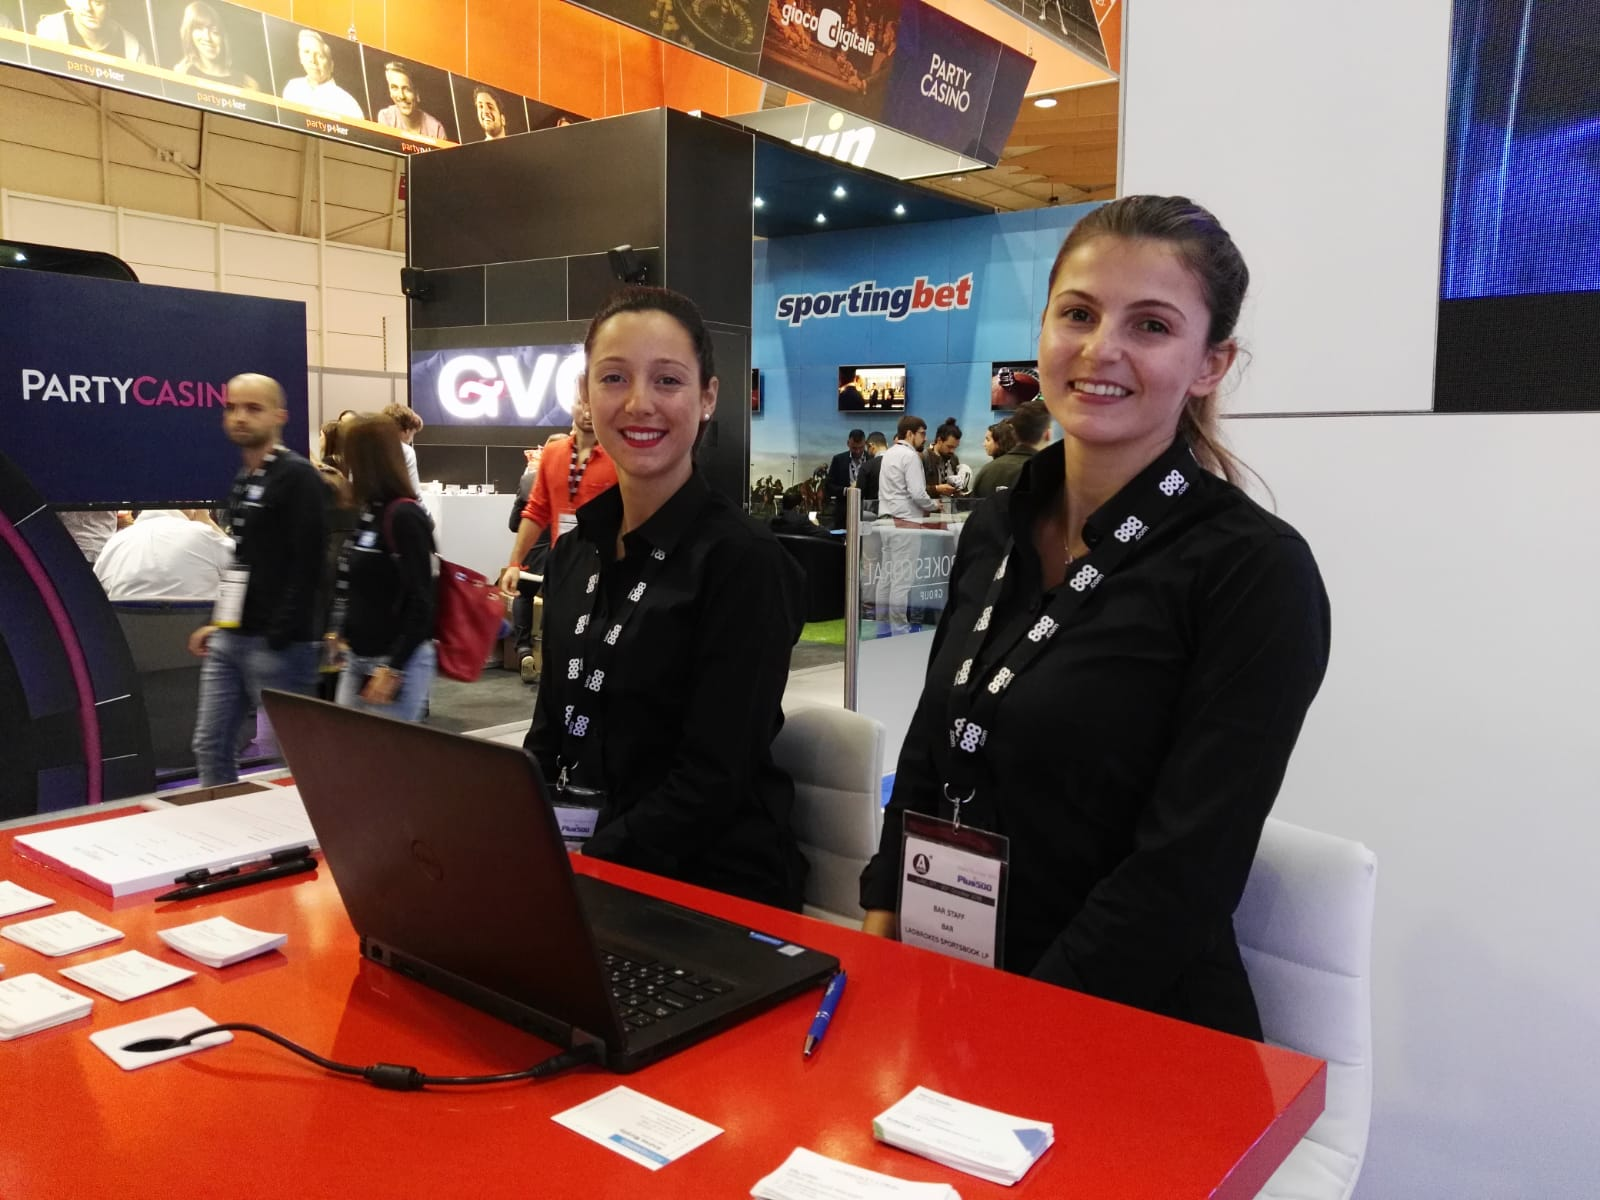 Hostesses available to greet guests and clients at events